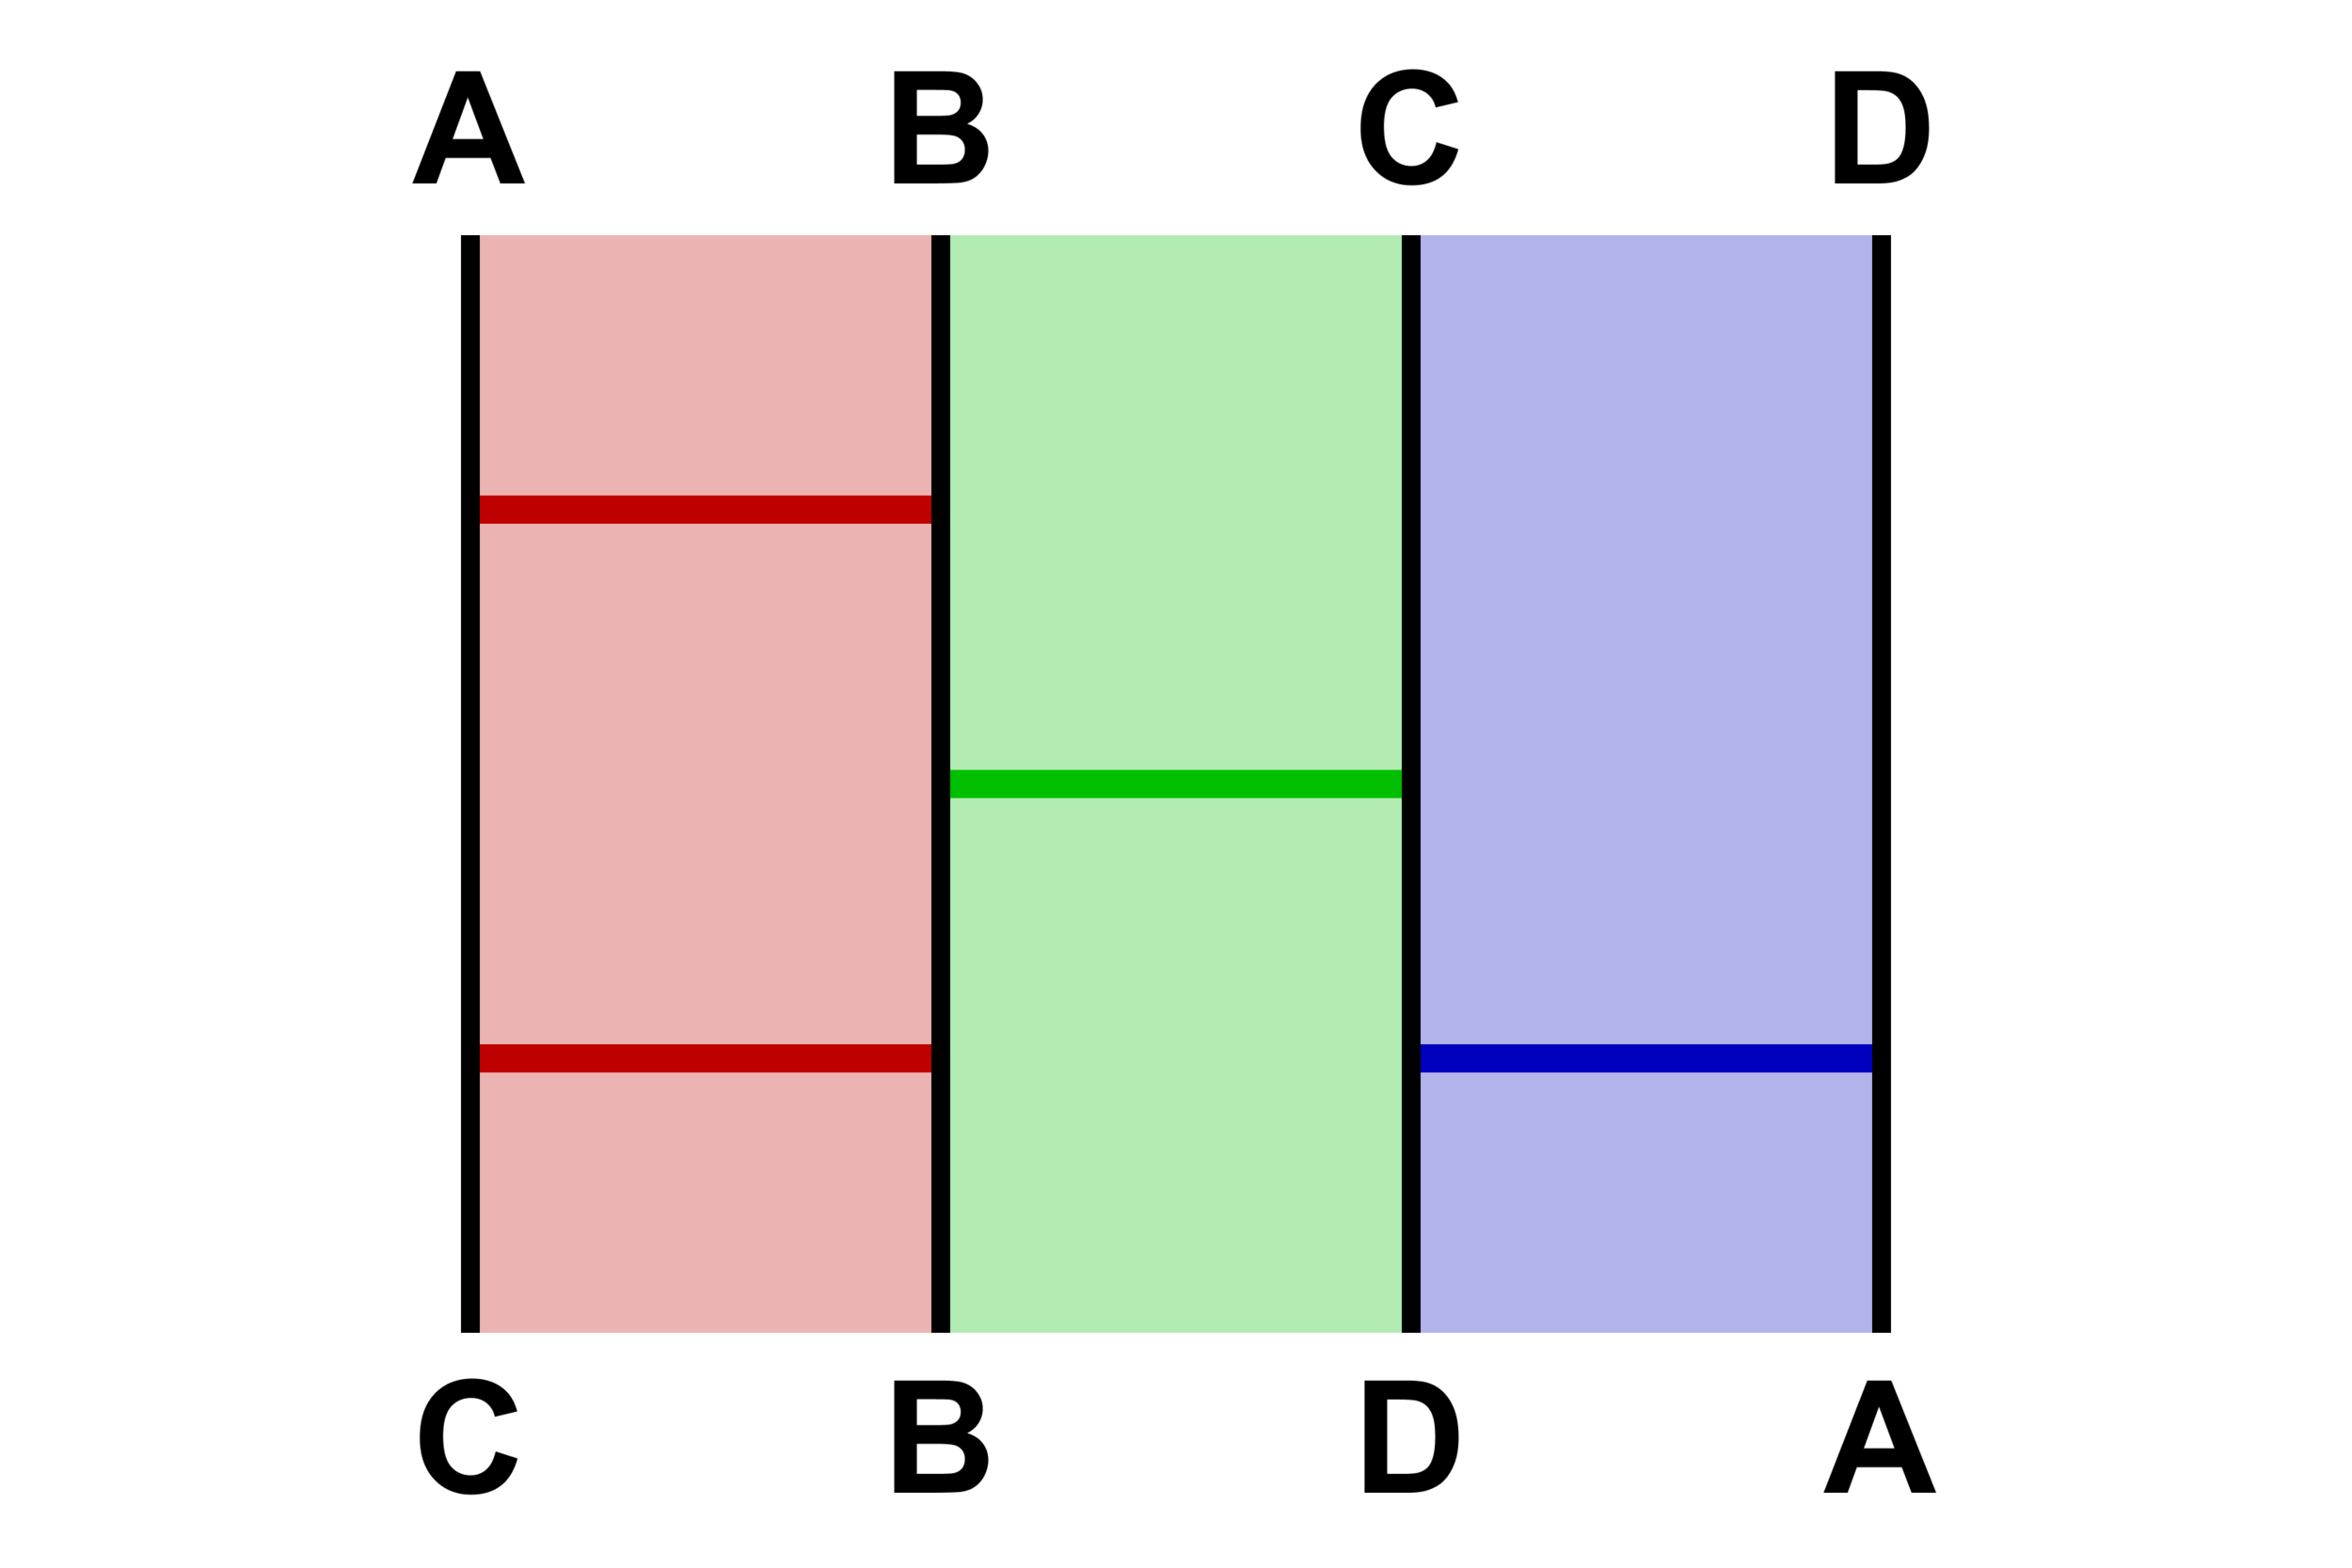 Ladder Puzzles